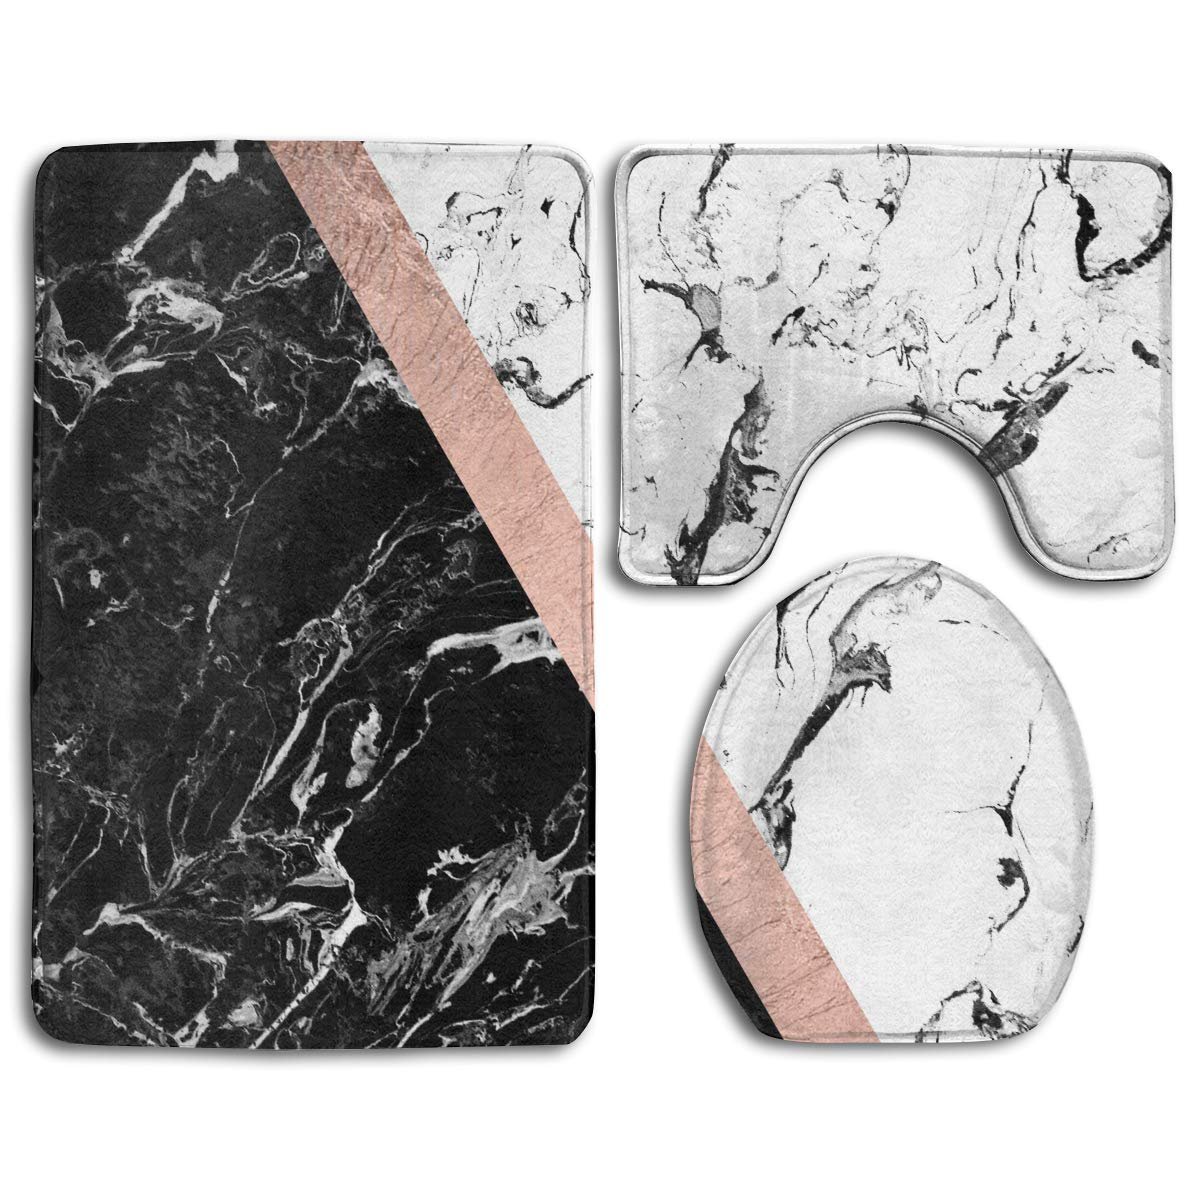 """CCBUTBA Bathroom Rug Mats Set 3 Piece Chic Black White Marble Color Block Rose Gold Extra Soft Bath Rugs (20""""x32"""") Contour Mat (20""""x16"""") and Lid Cover (18""""x14"""")"""